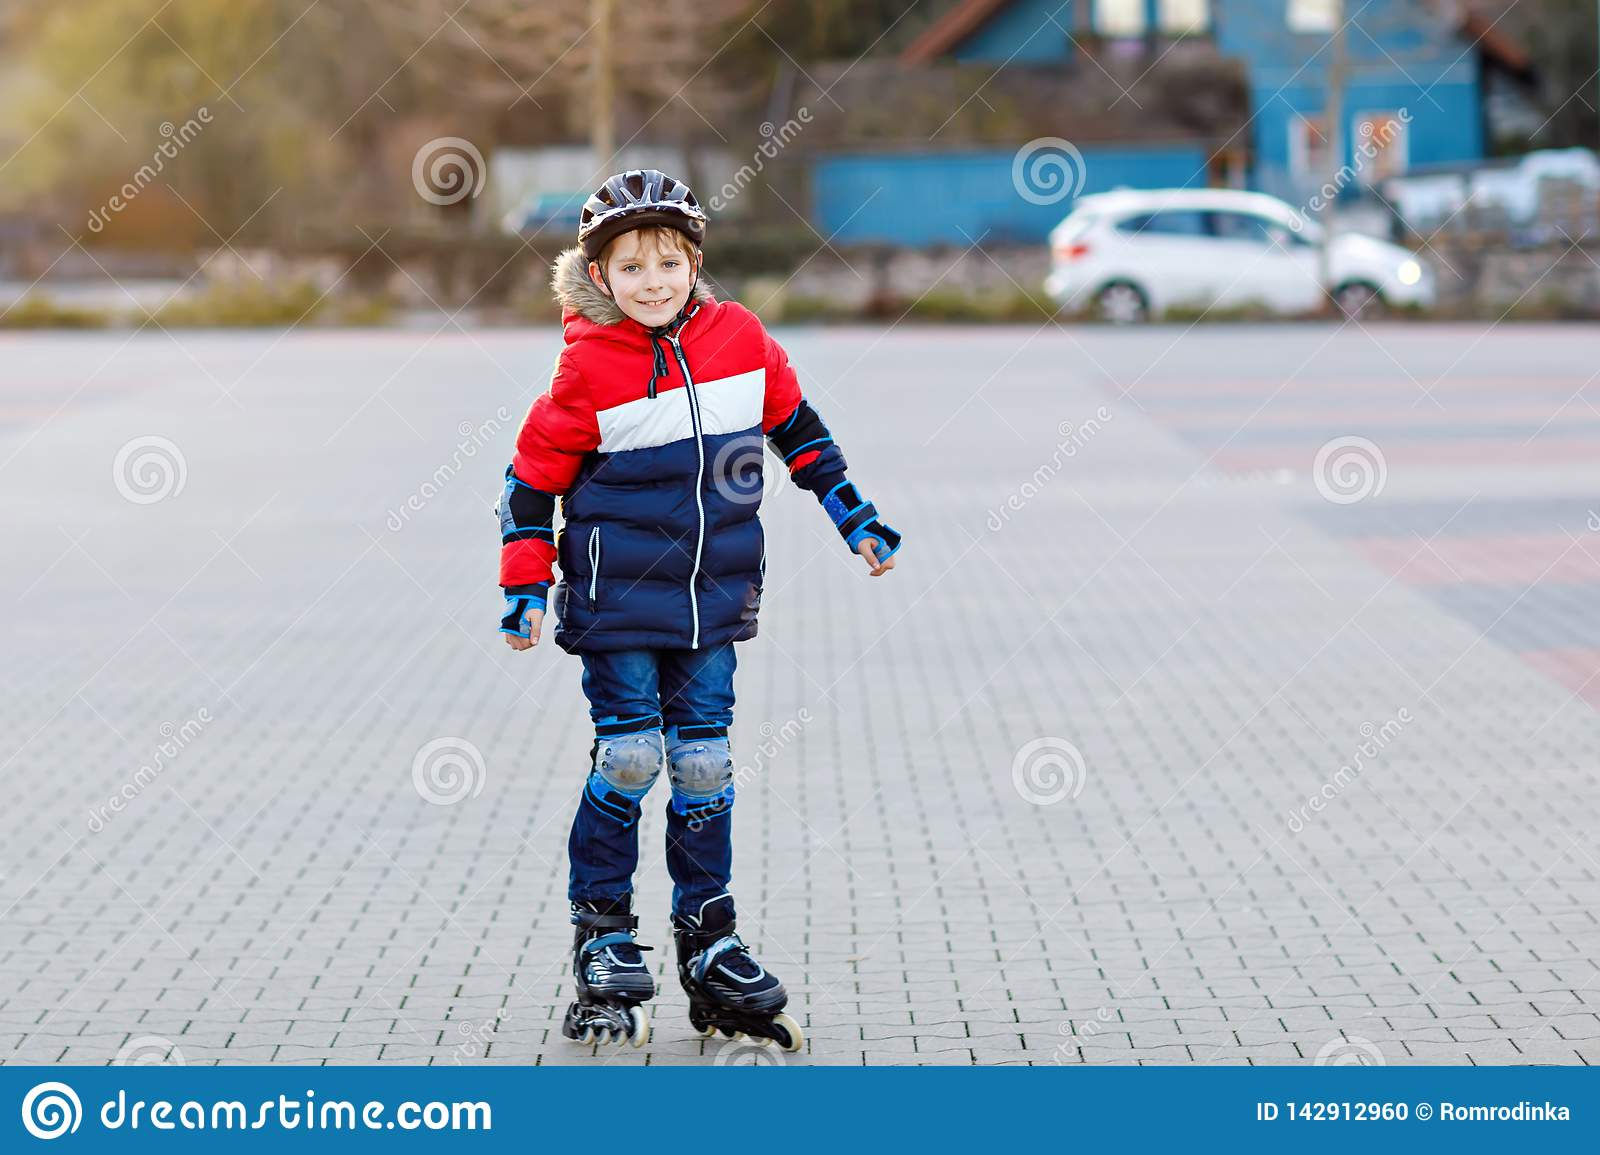 Cute school kid boy skating with rollers in the city. Happy healthy child in protection safety clothes skating with